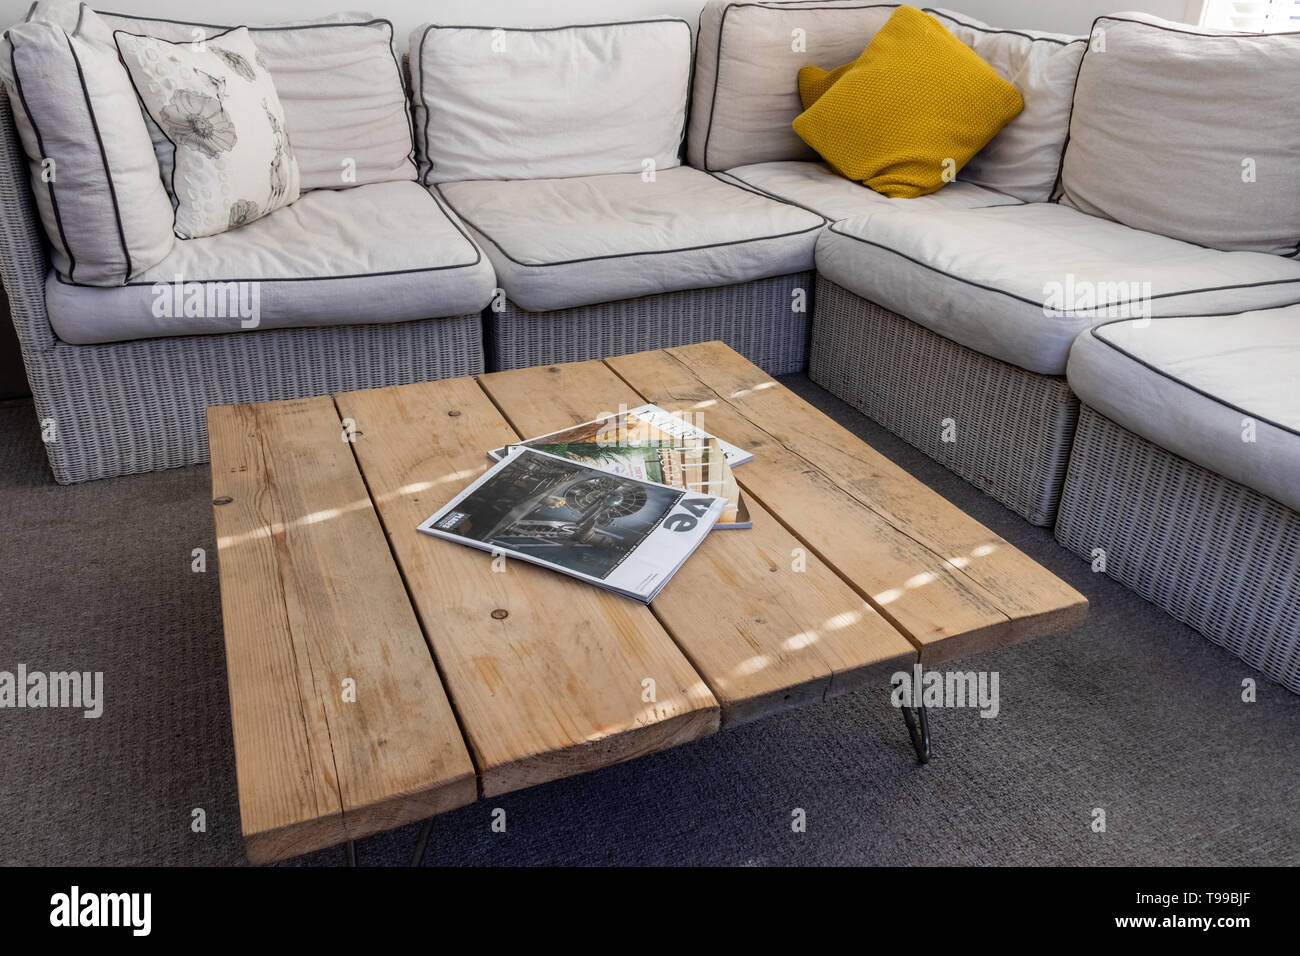 A Modern Light Living Room In And English Home With Wooden Coffee Table And Interior Design Magazines In The Foreground Stock Photo Alamy